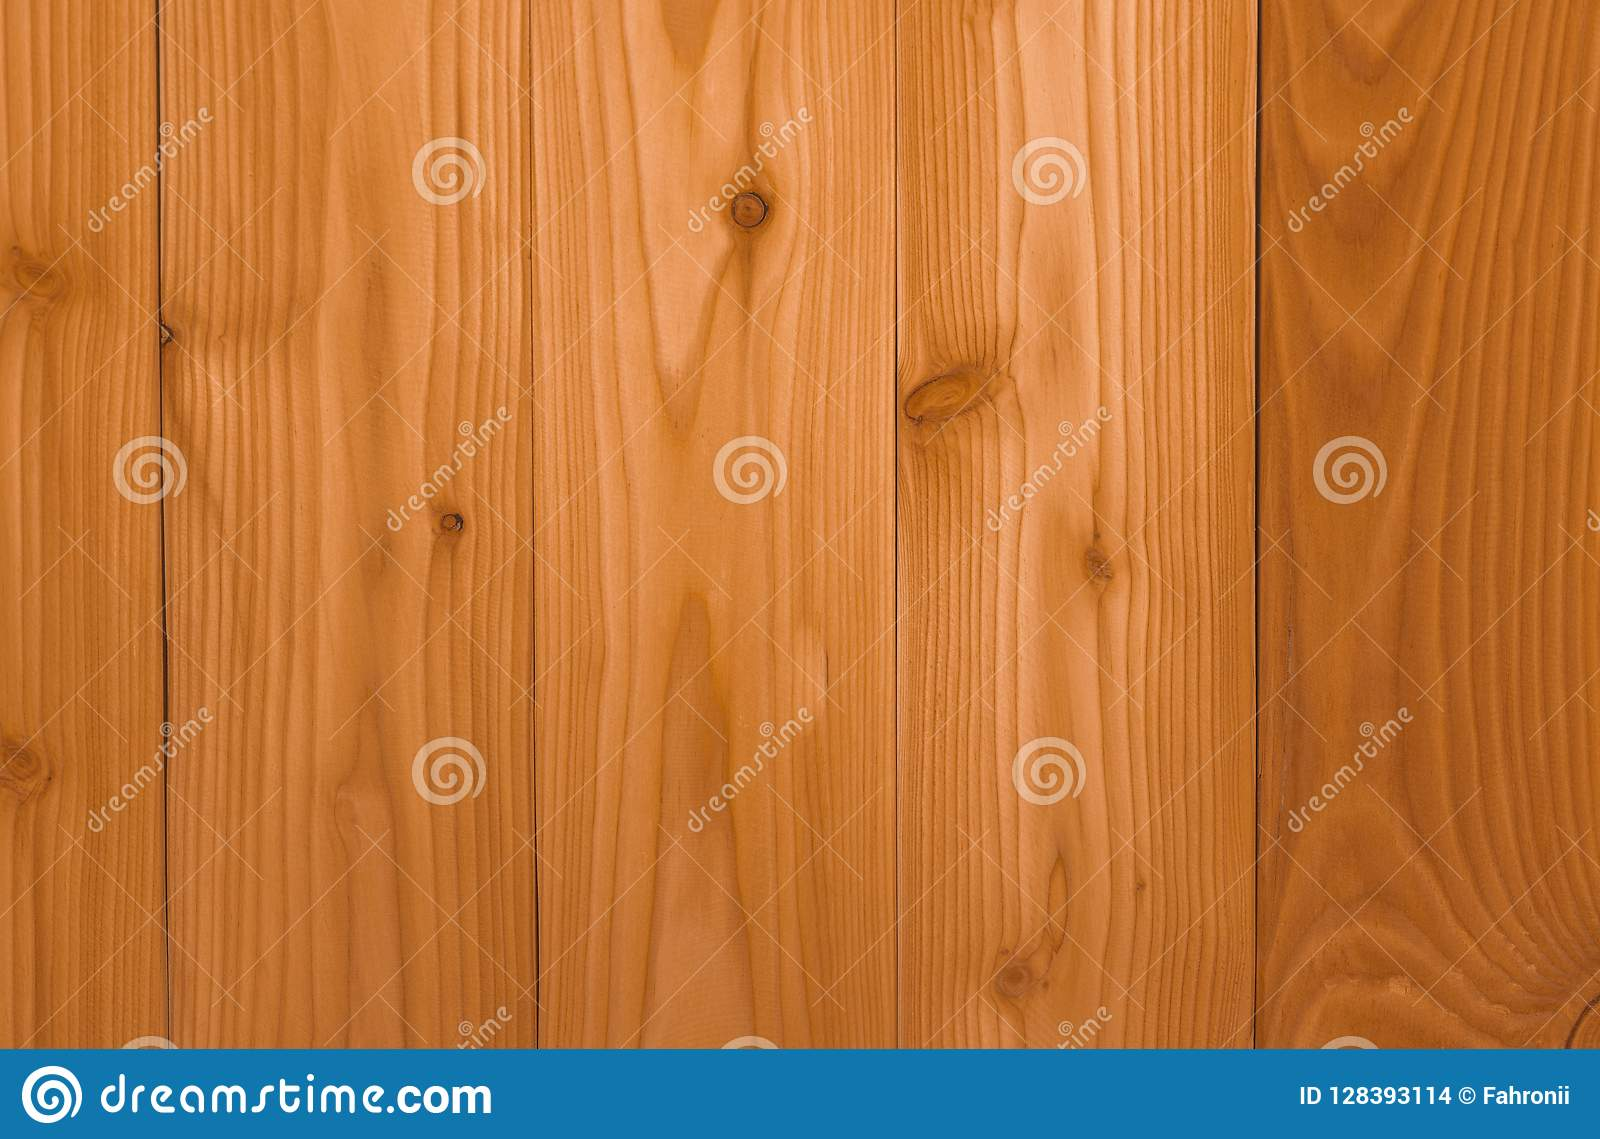 Closeup yellow wood texture background. Wood texture with unique pattern.Empty brown wooden wall. Wooden board. Orange wood timber